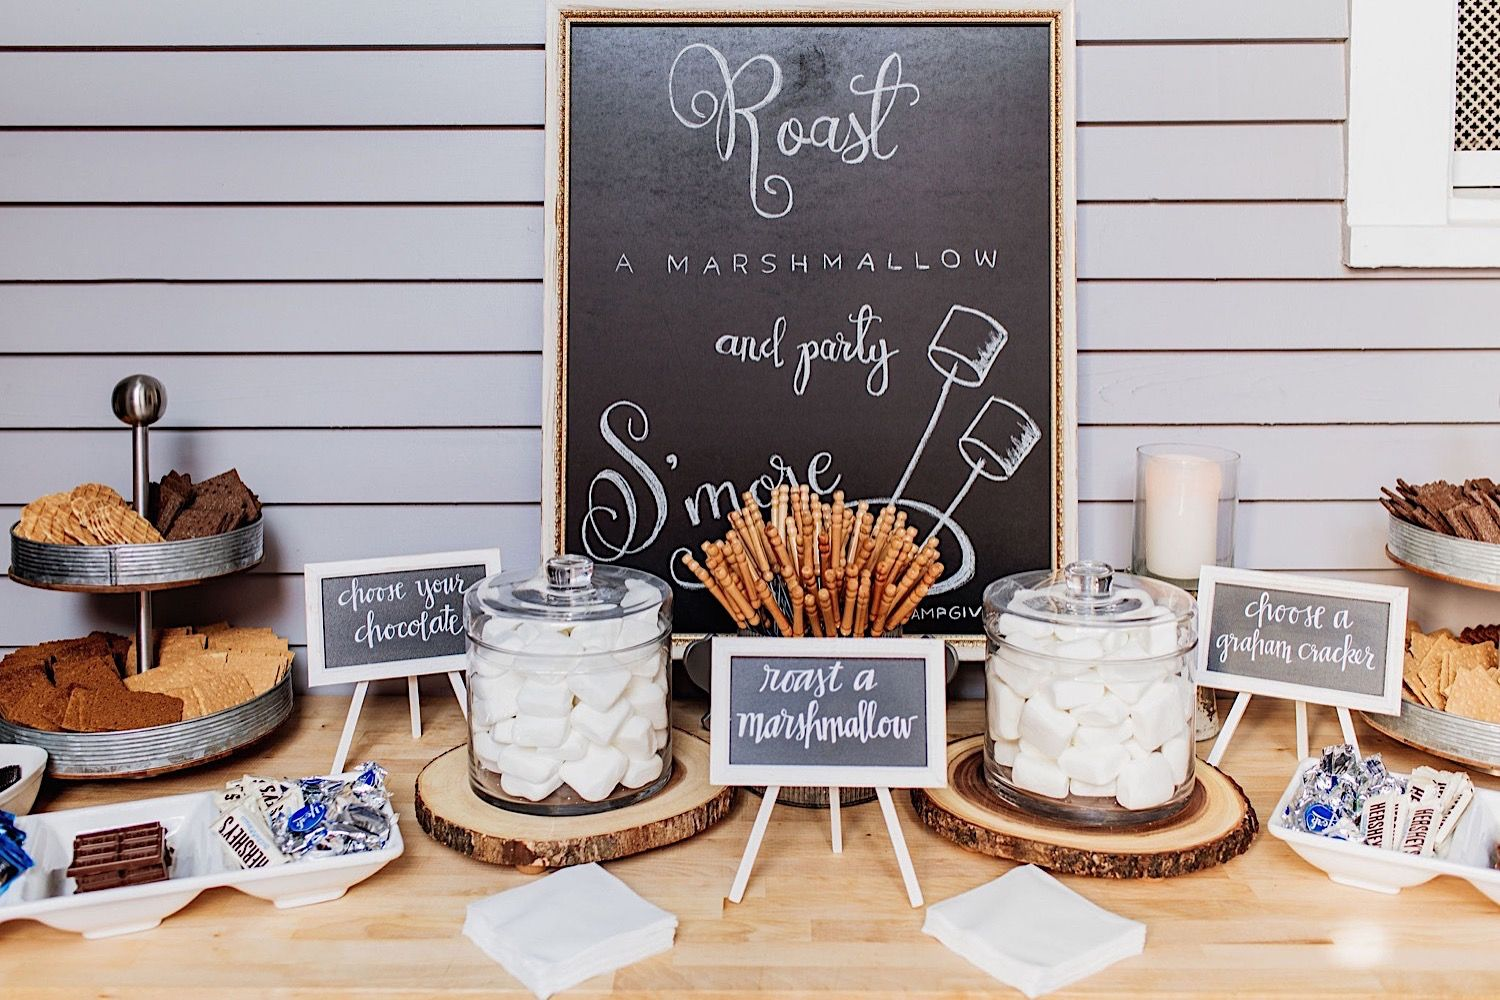 stores table at a wedding at the Orlo in tampa